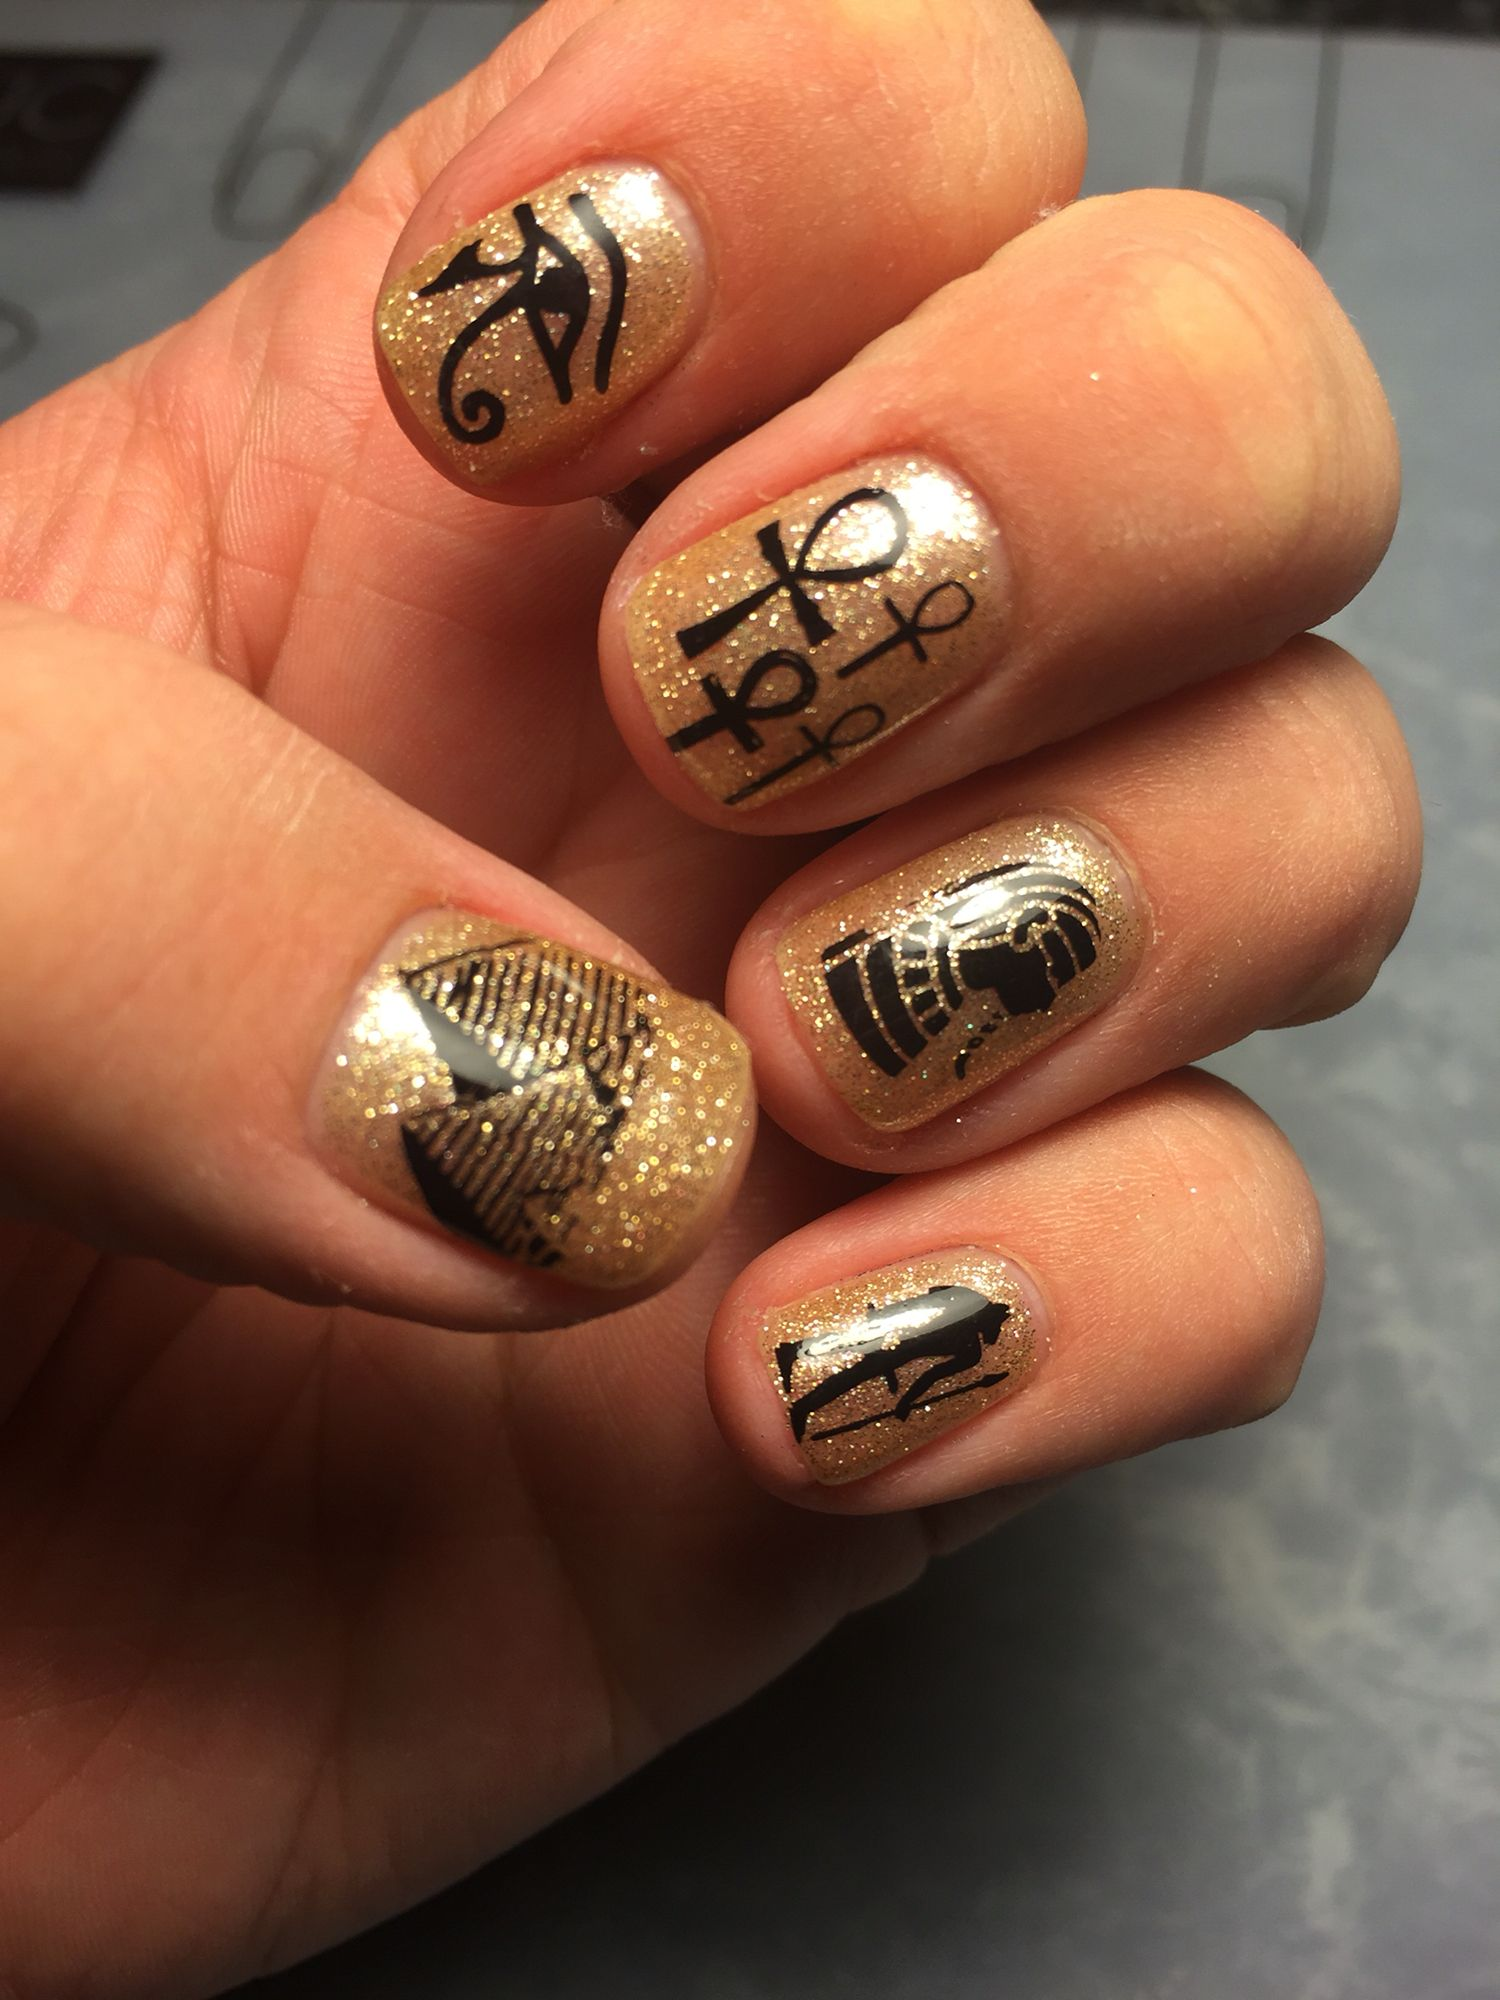 Egyptian nails, check out the instagram page @danielle8857 for more ...